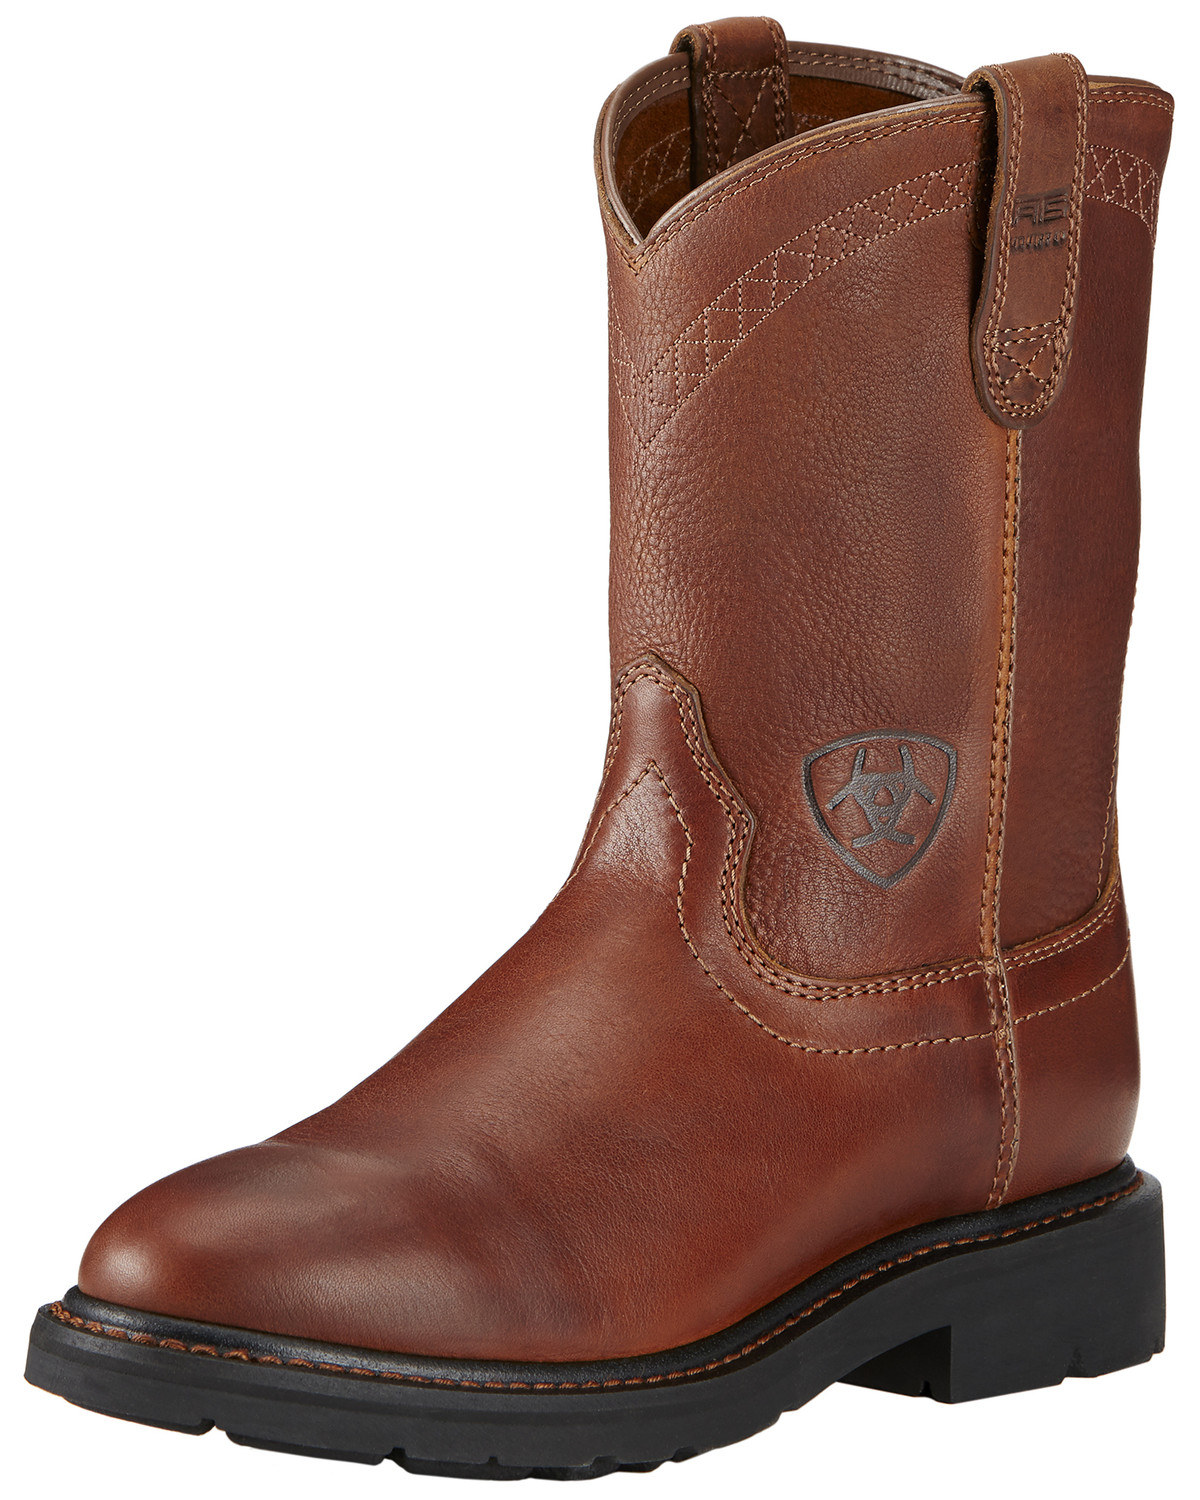 Work Boots Cowboy Style Boot Ri